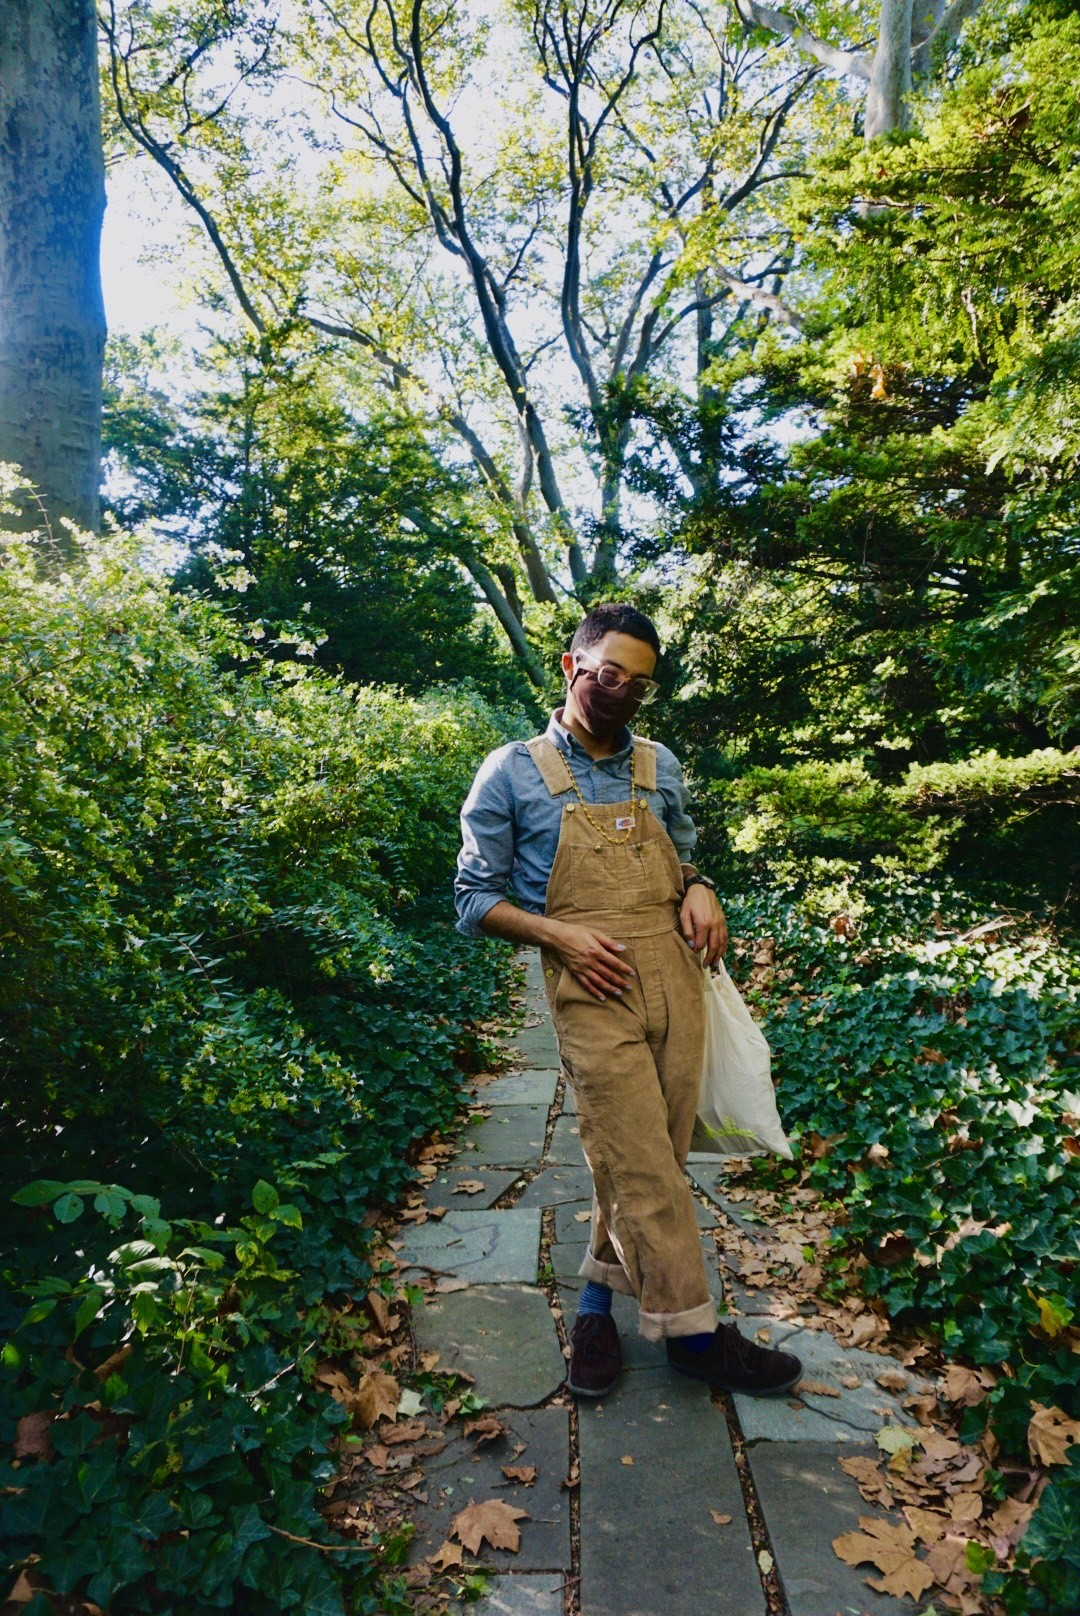 danilo machado is standing outside on a cobblestone path surrounded by green plants, wearing overalls and a face mask.